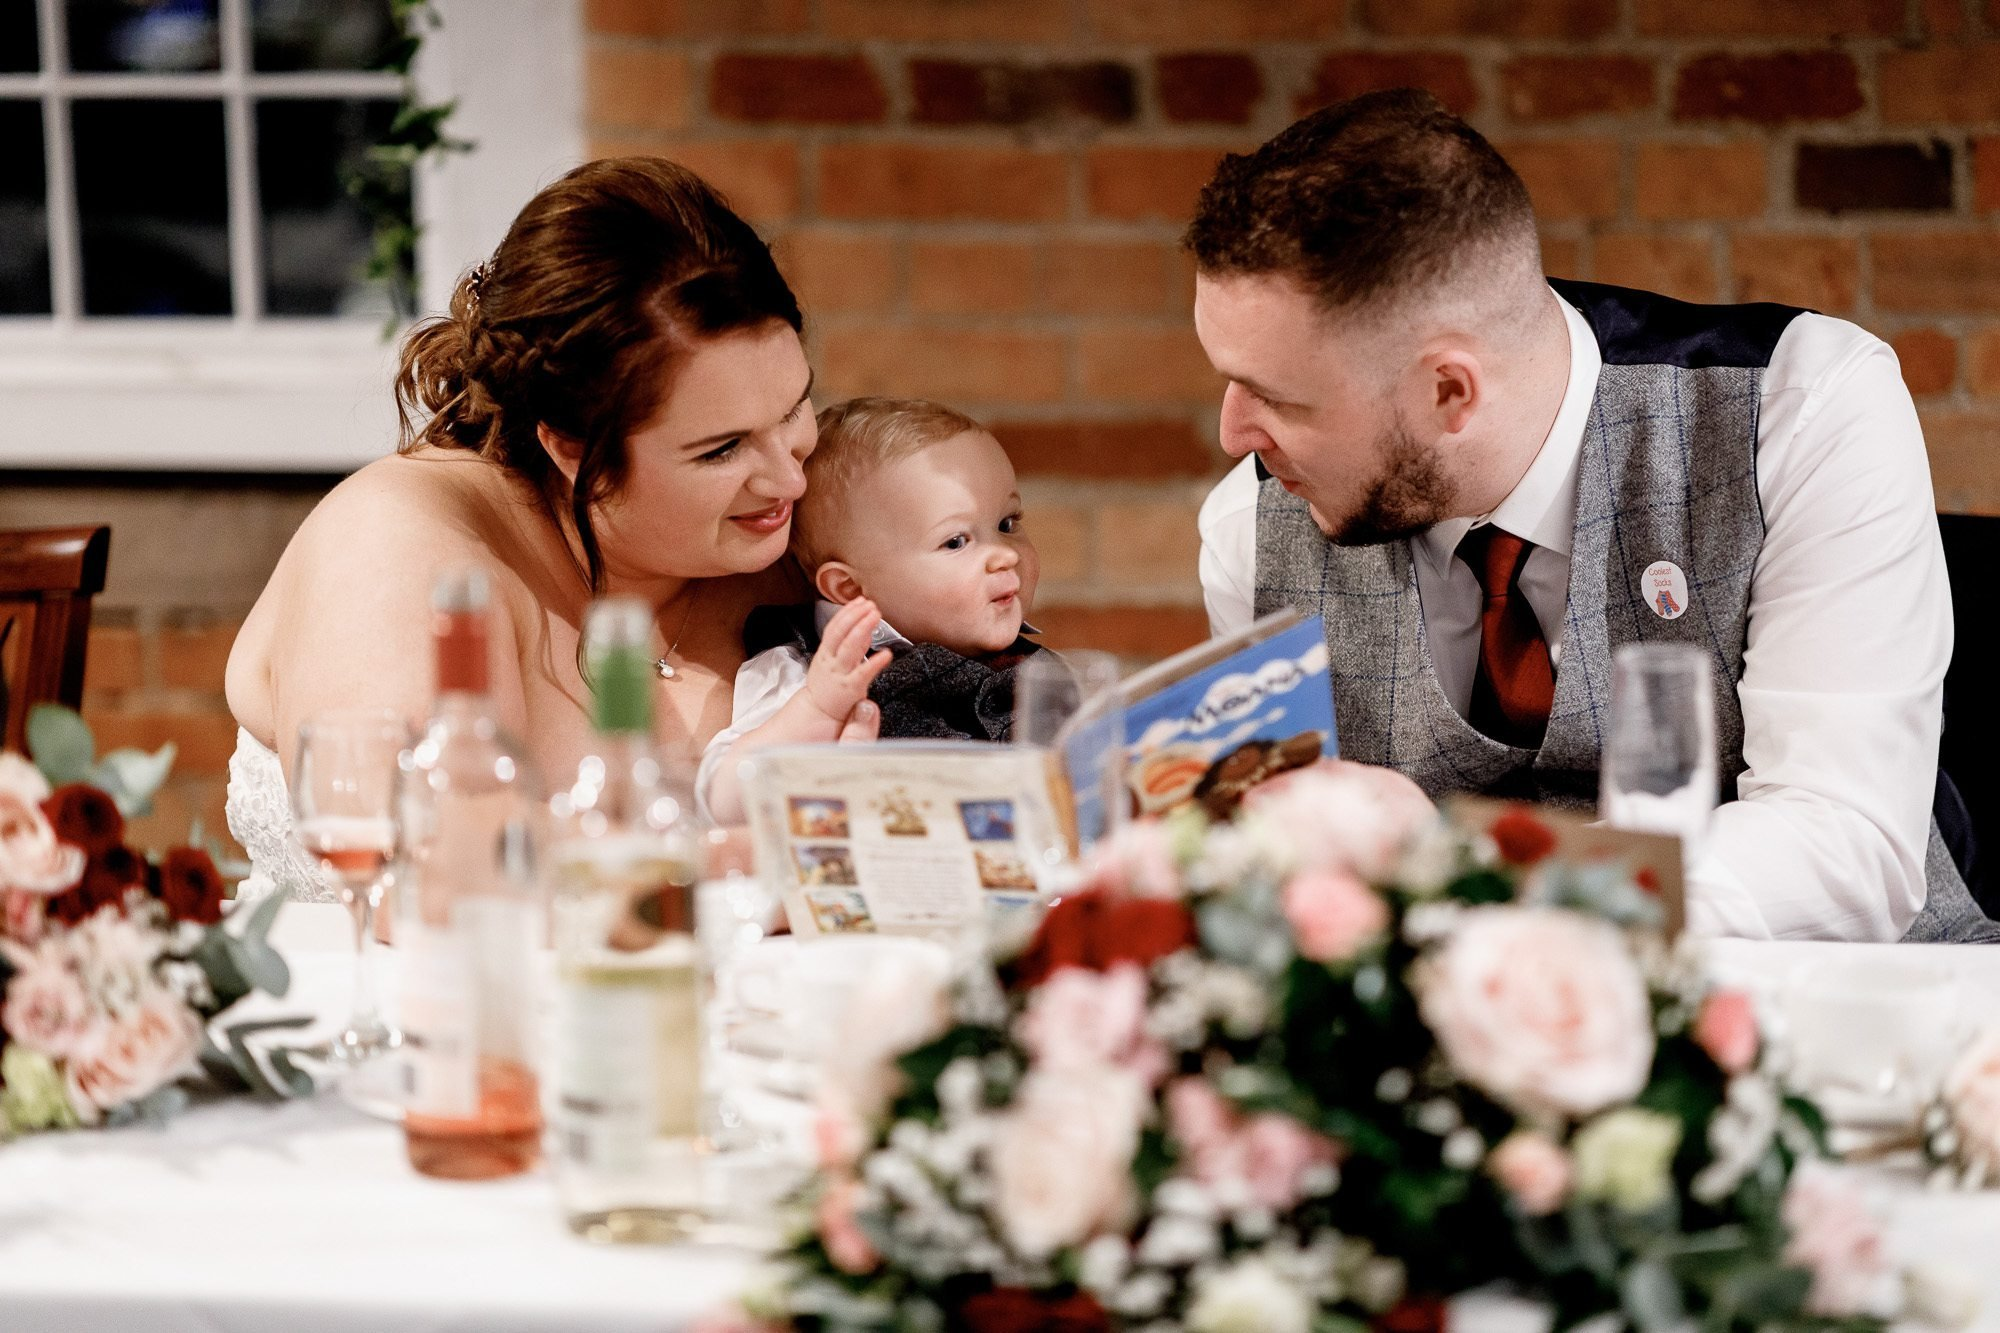 Bride and groom reading to baby son during wedding breakfast